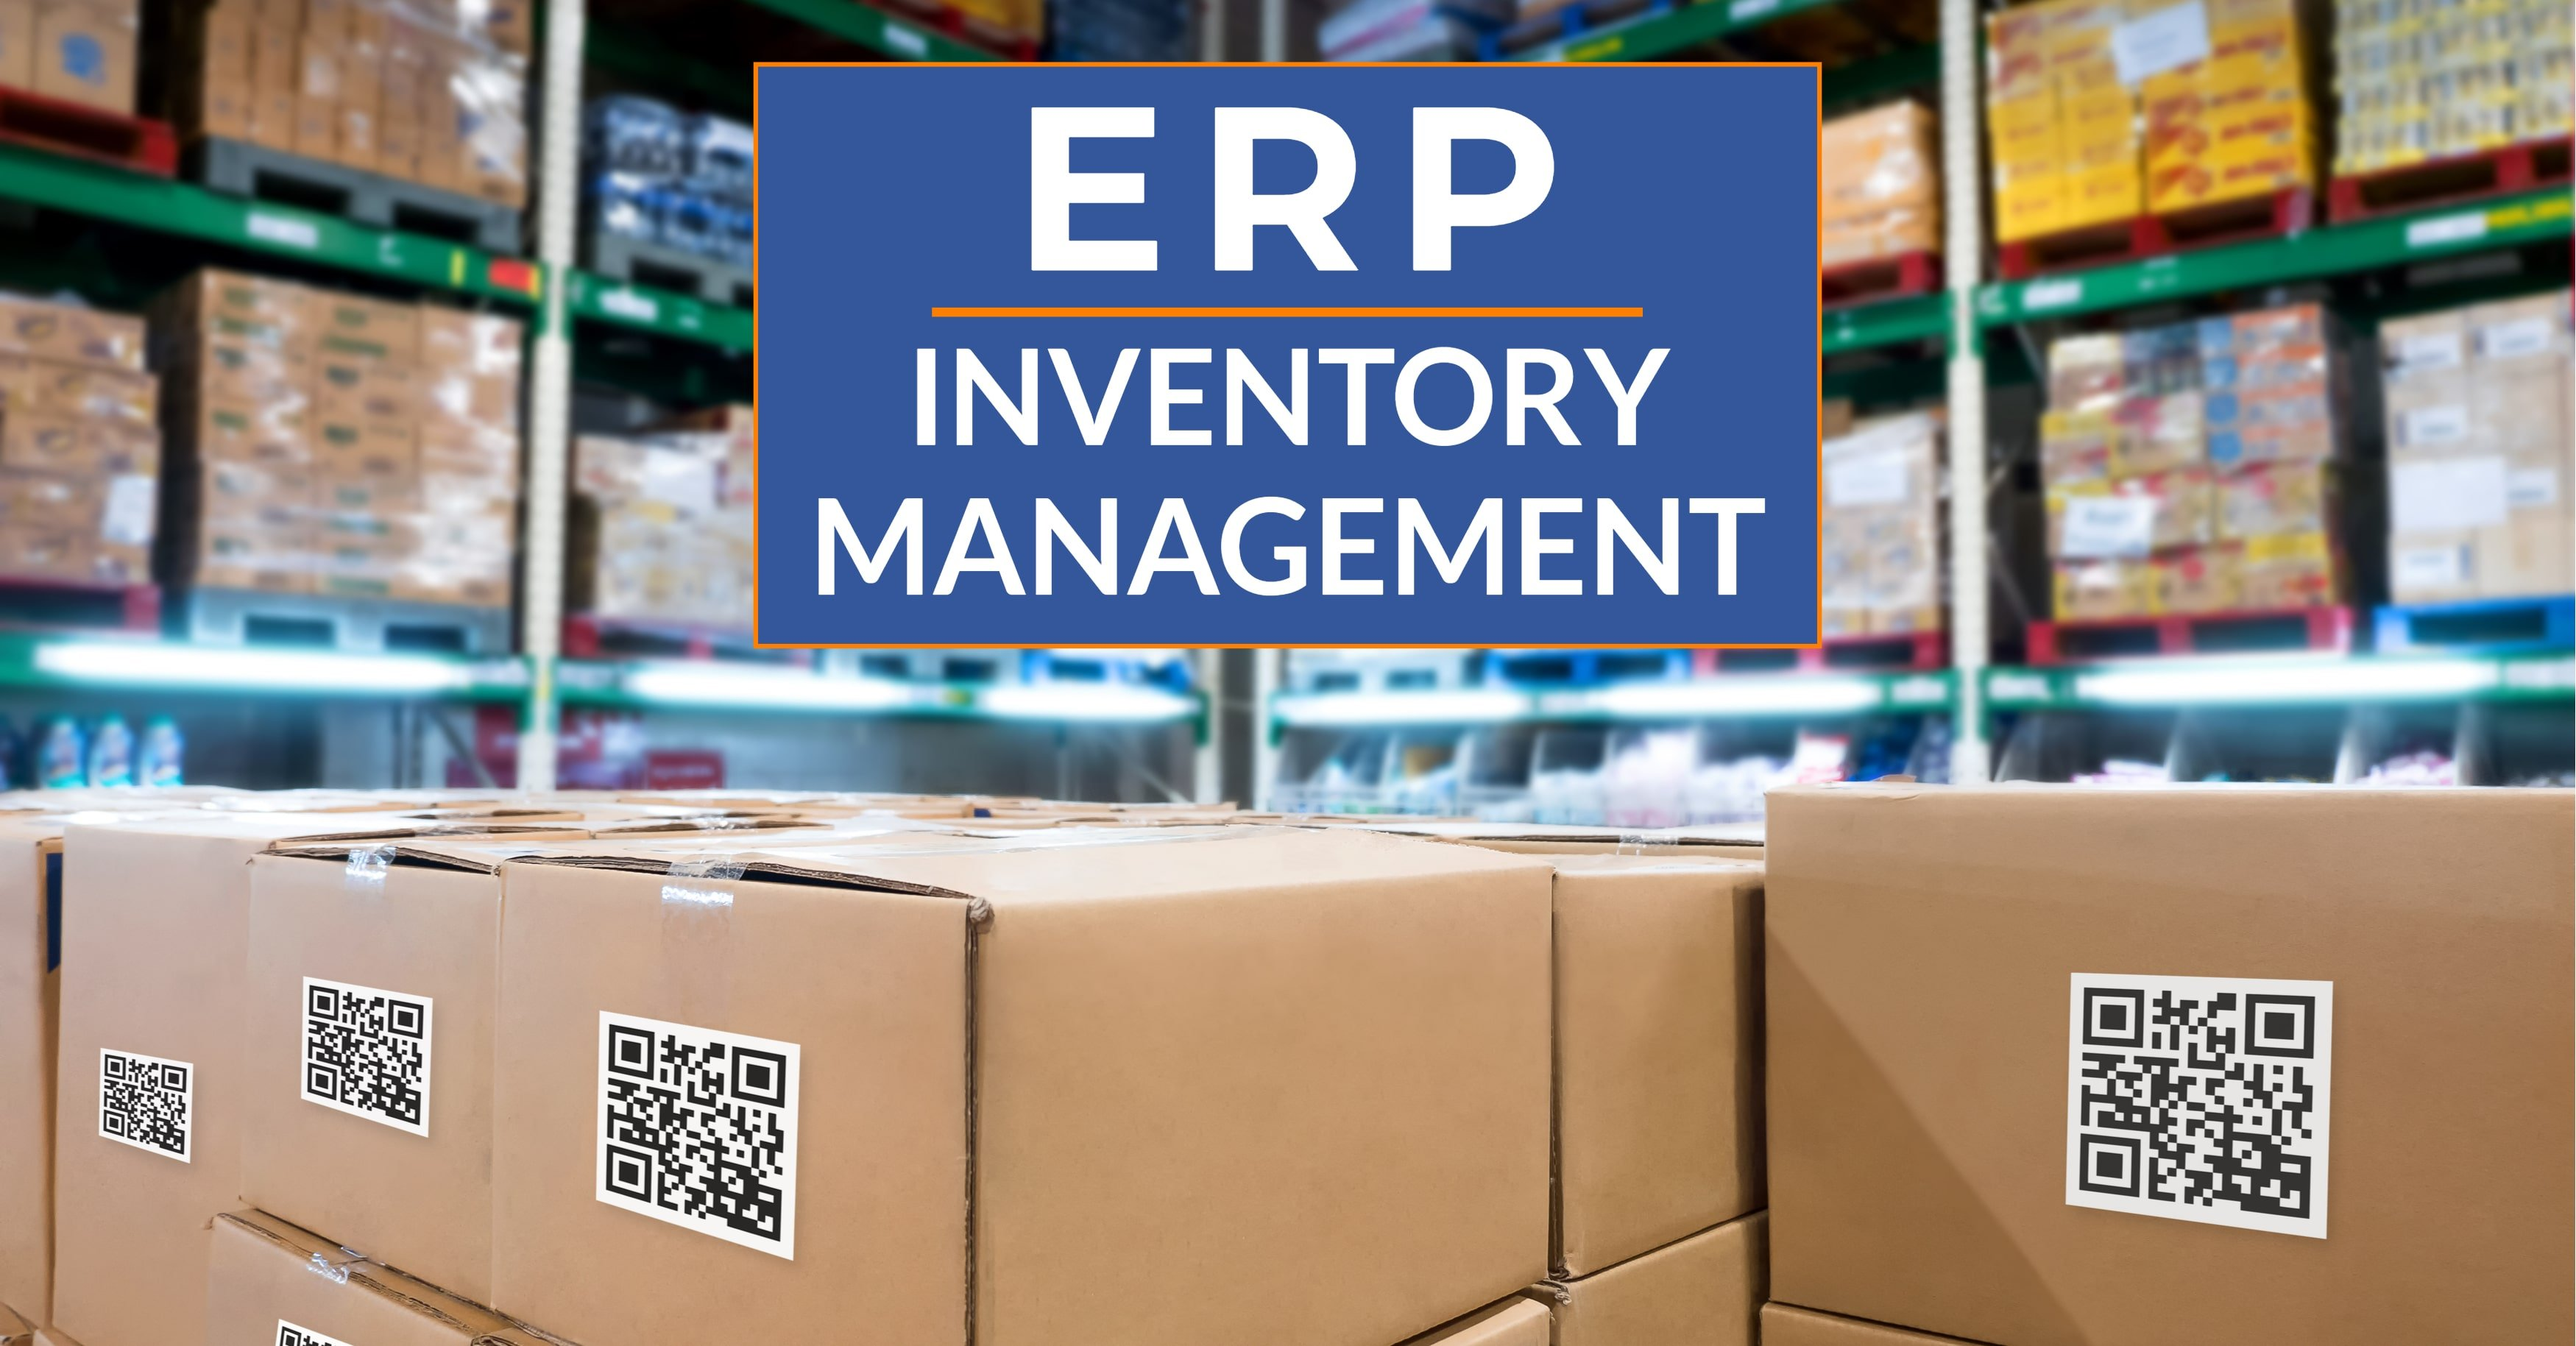 How Does ERP Improve Inventory Management?